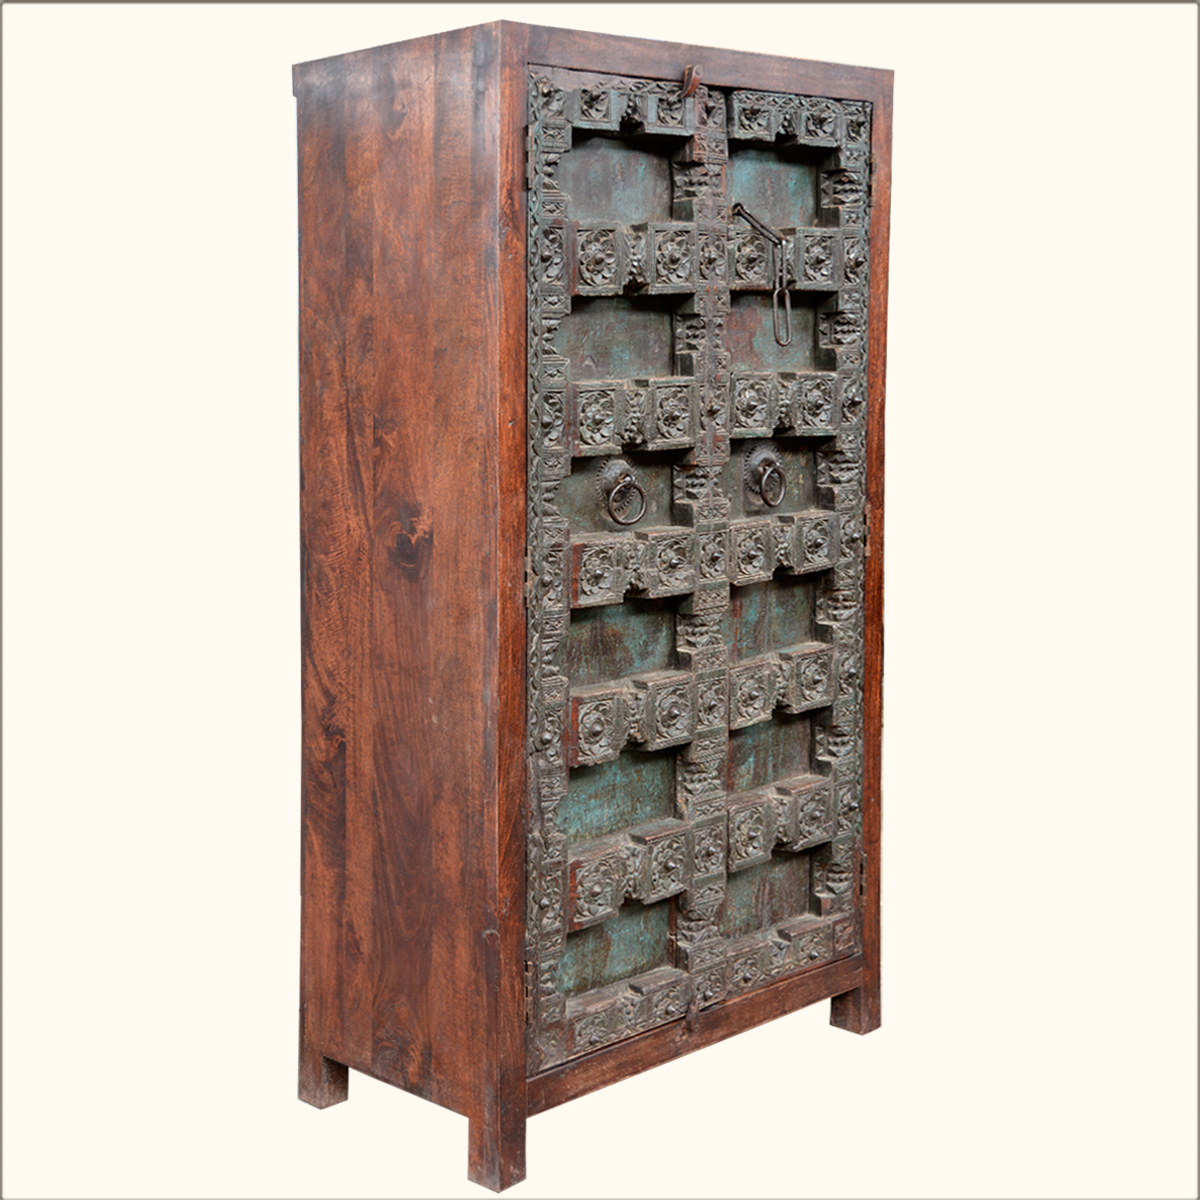 Antique Door Rustic Armoire Old Reclaimed Wood 4 Storage Shelf Cabinet . Full resolution  img, nominally Width 1200 Height 1200 pixels, img with #B48317.